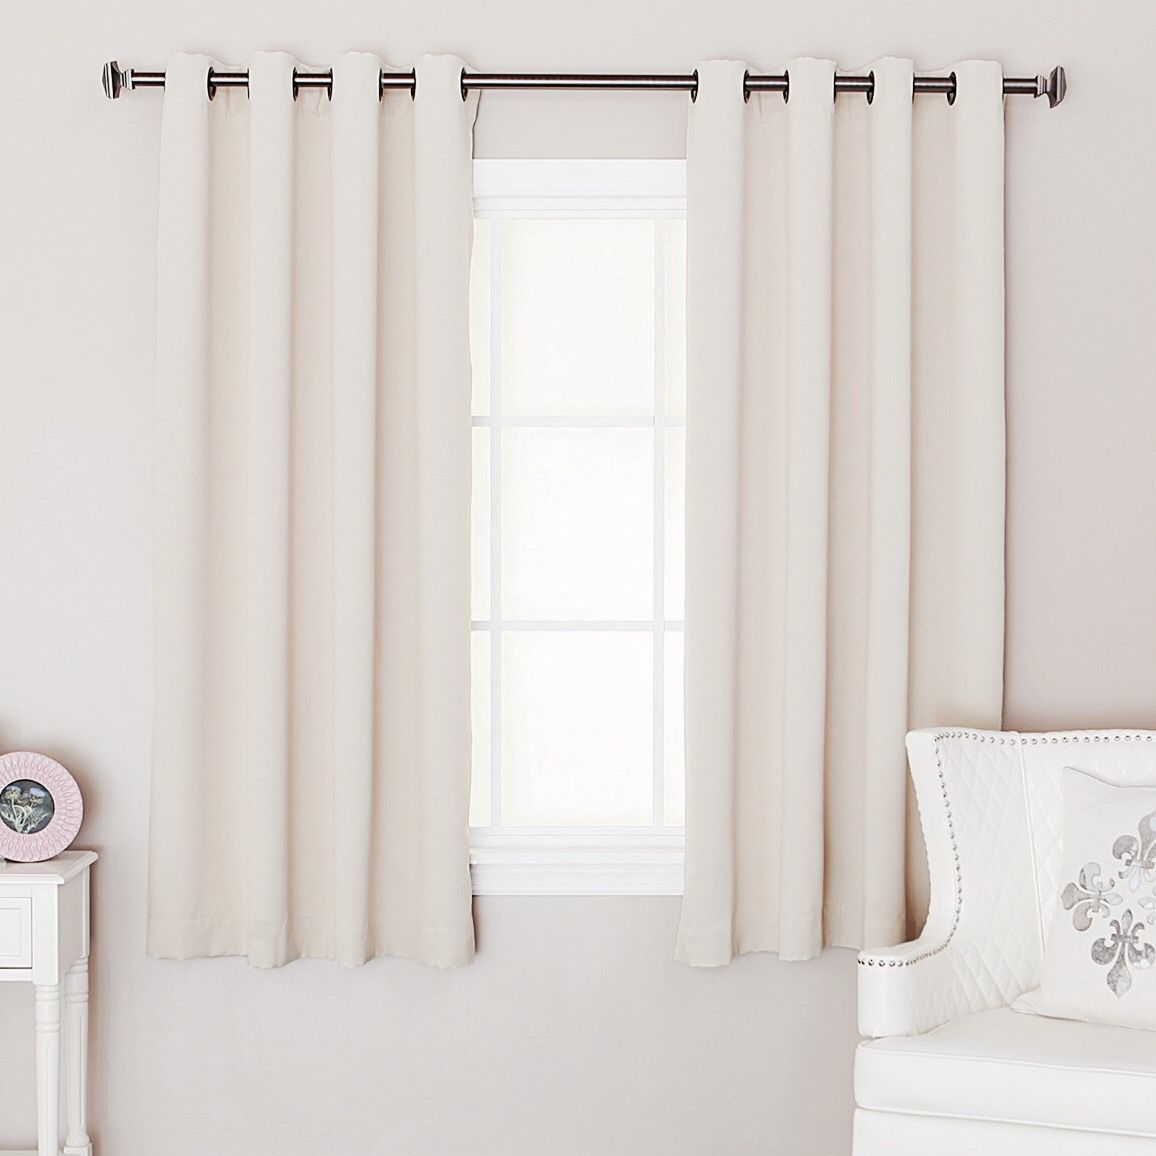 Small window curtain ideas interior pinterest short Bedroom curtain ideas small windows